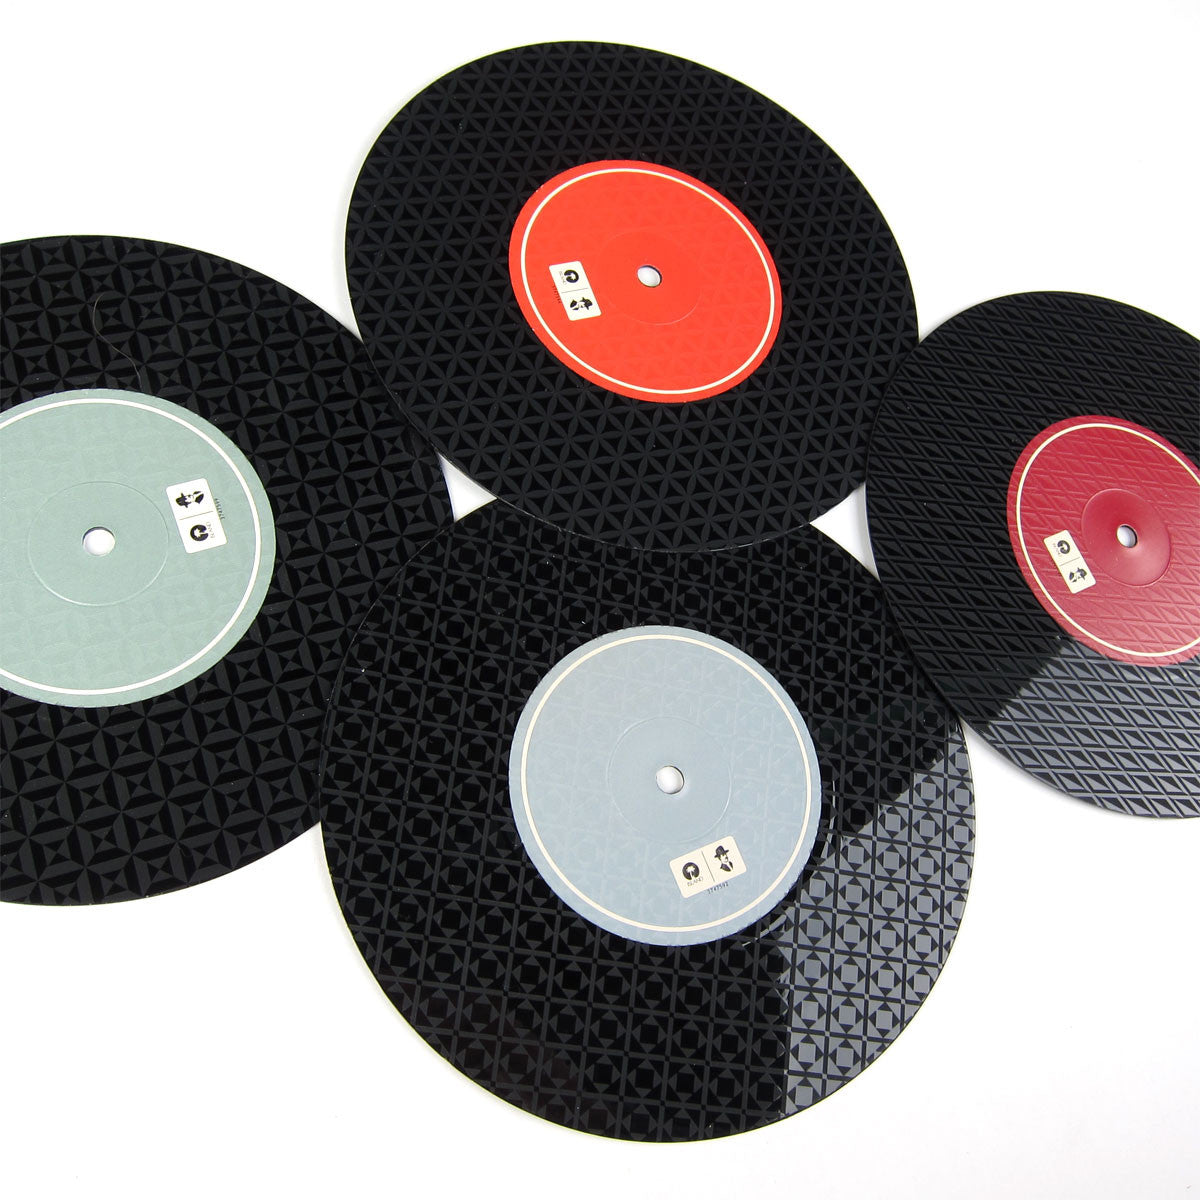 "Mumford & Sons: Babel - The Singles Collection Vinyl 7"" Boxset detail"